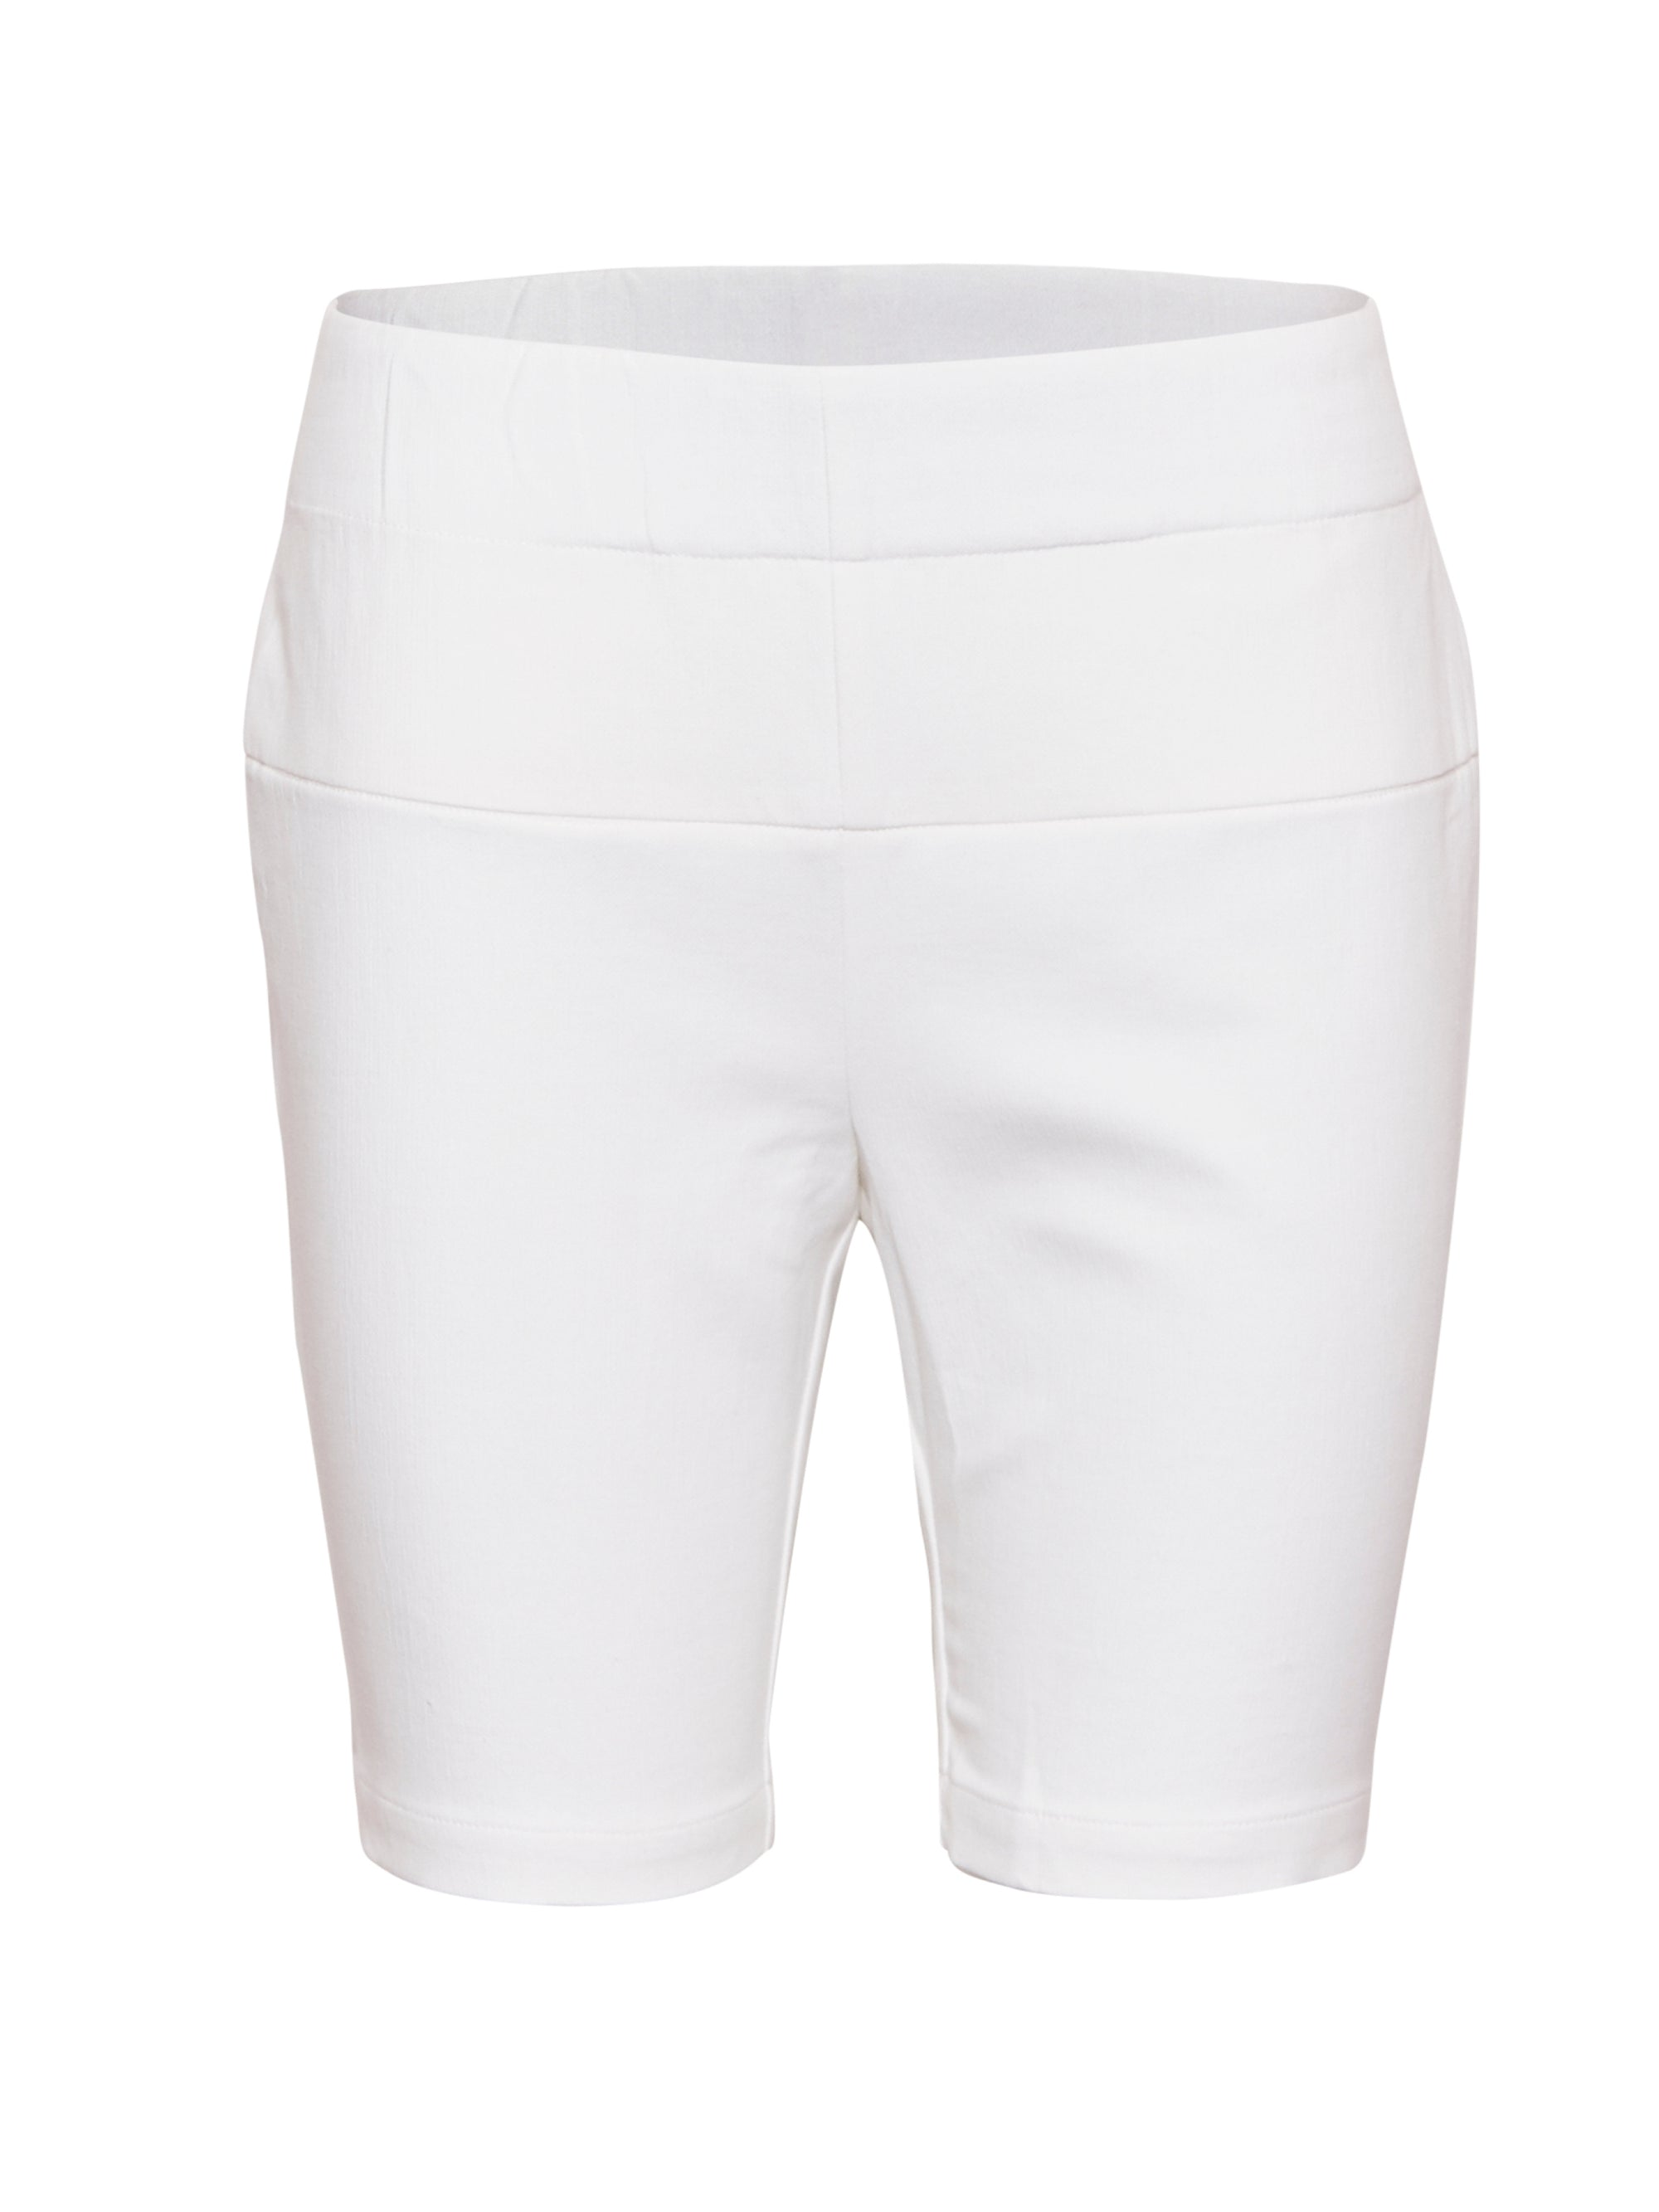 ROCCO BIKE PANT | POWDER